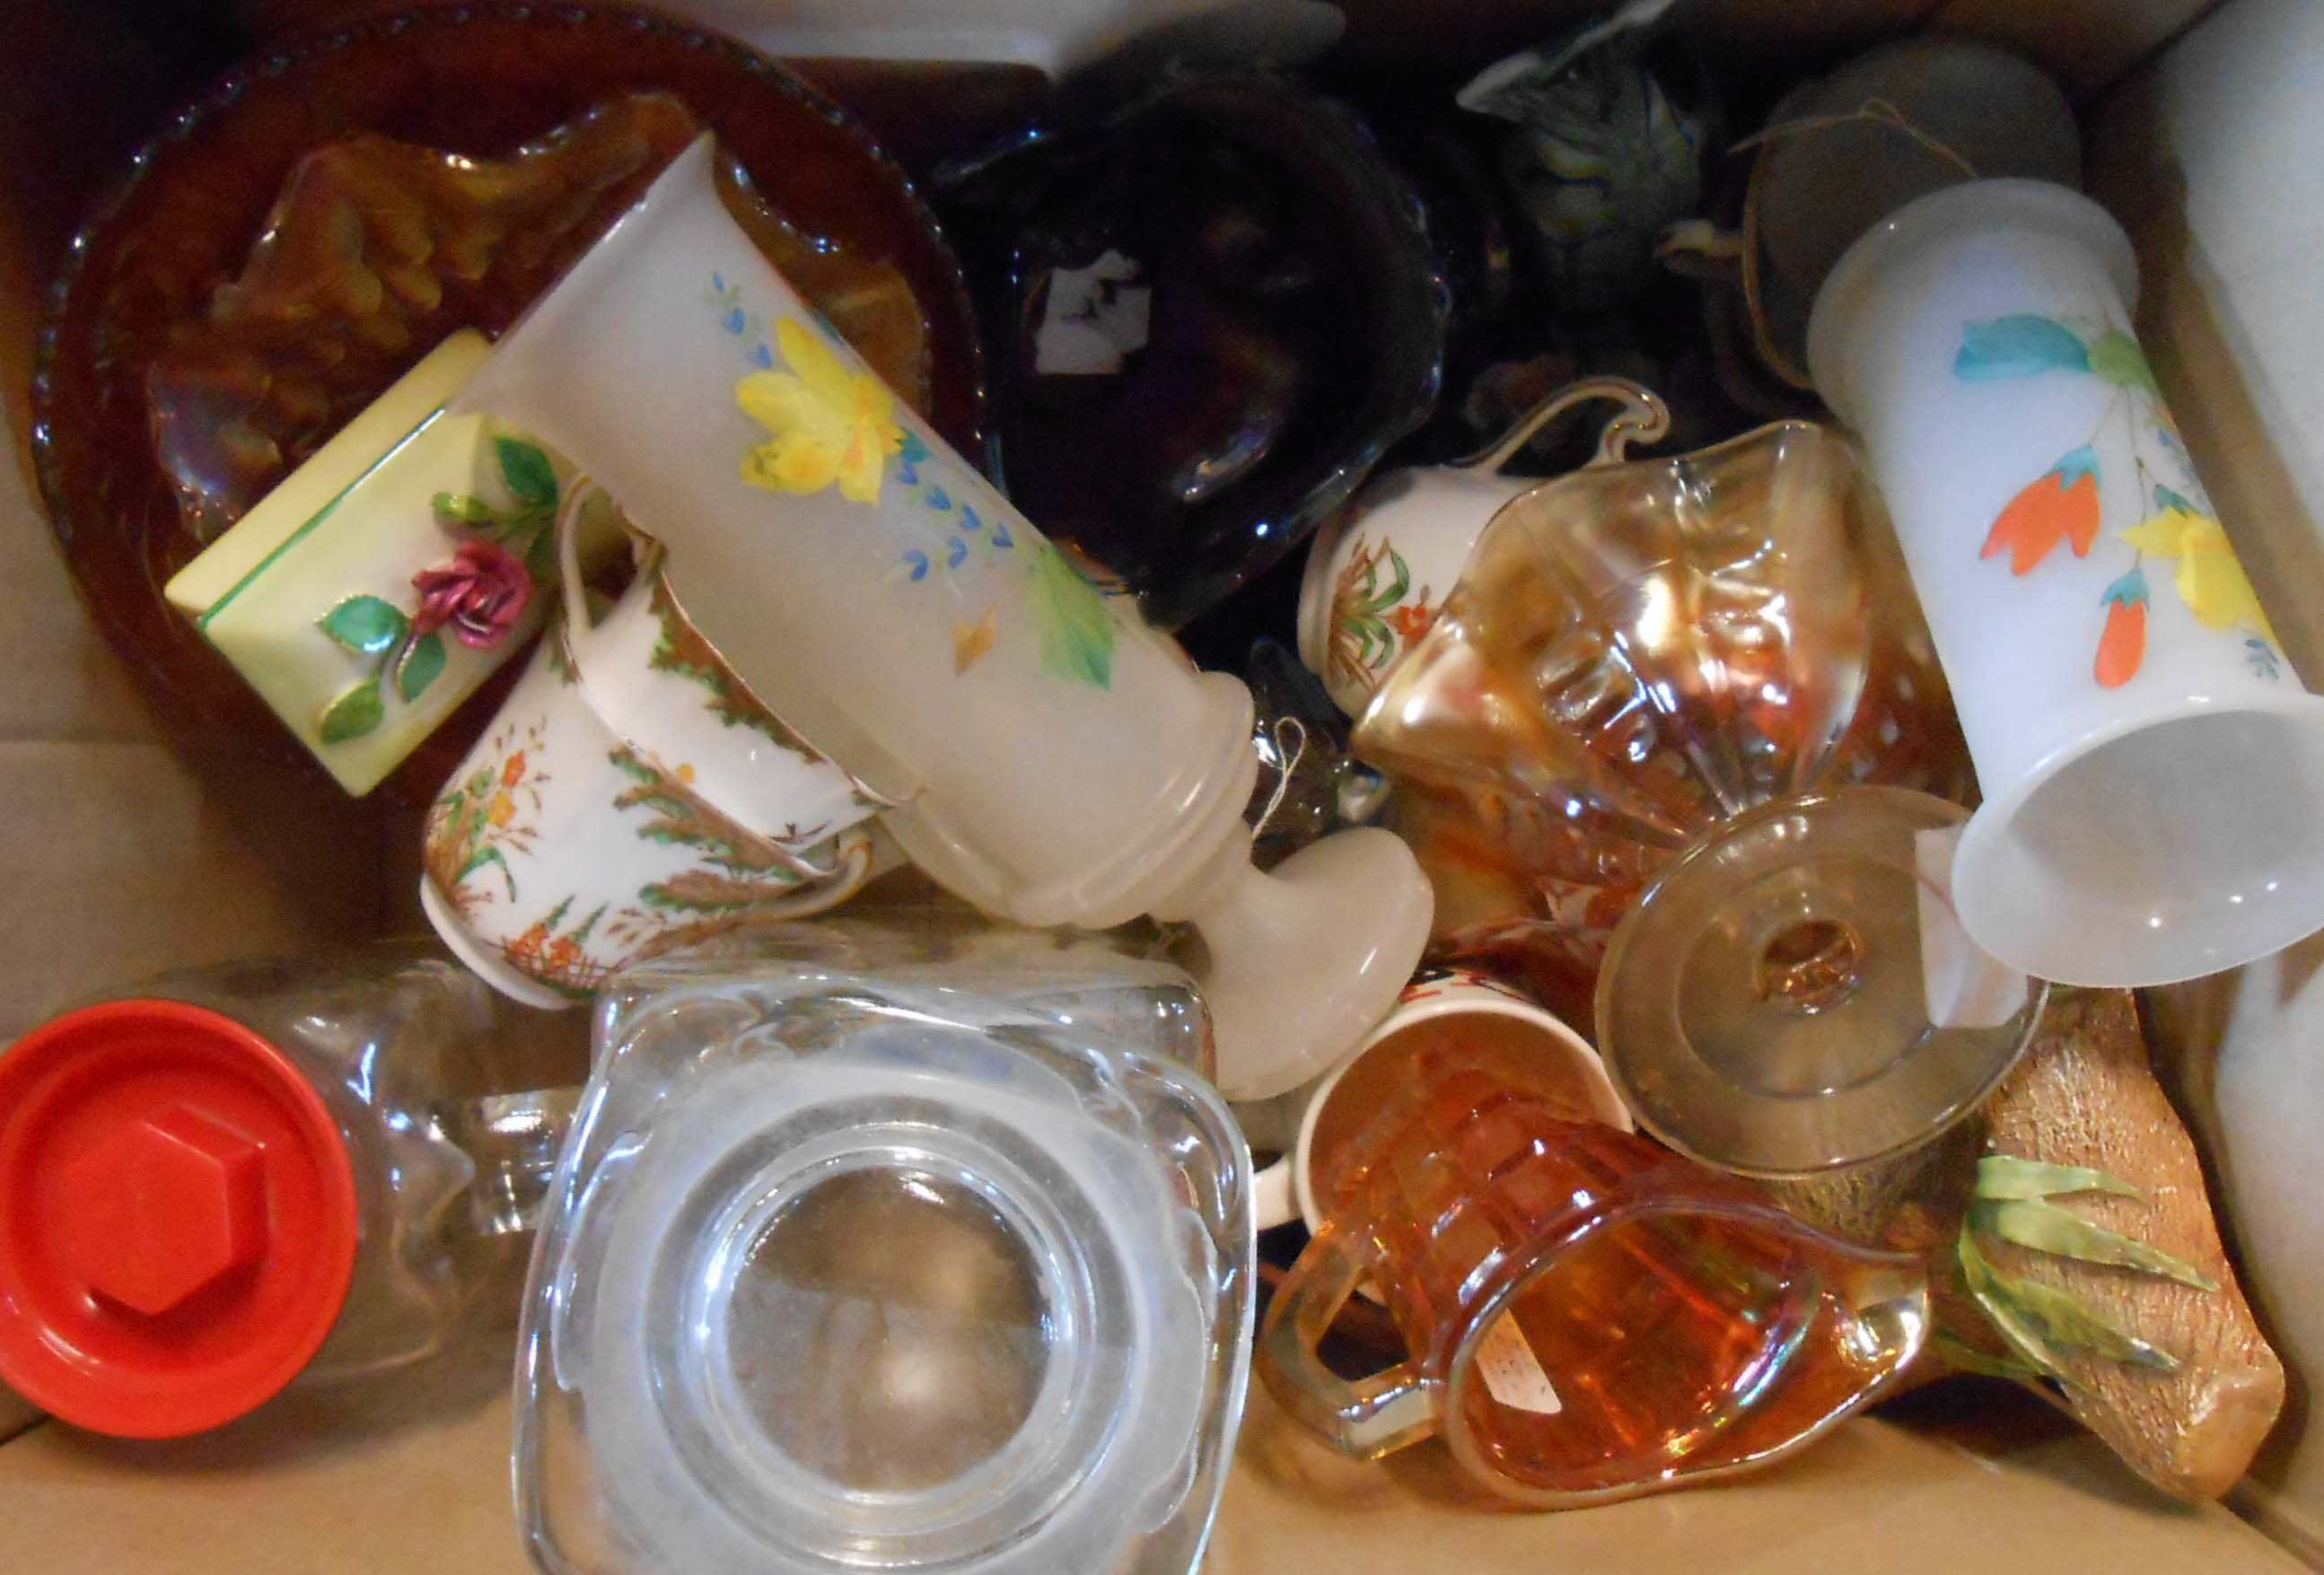 A box containing assorted ceramics and glass including carnival glass, golly mugs, teaware, etc.